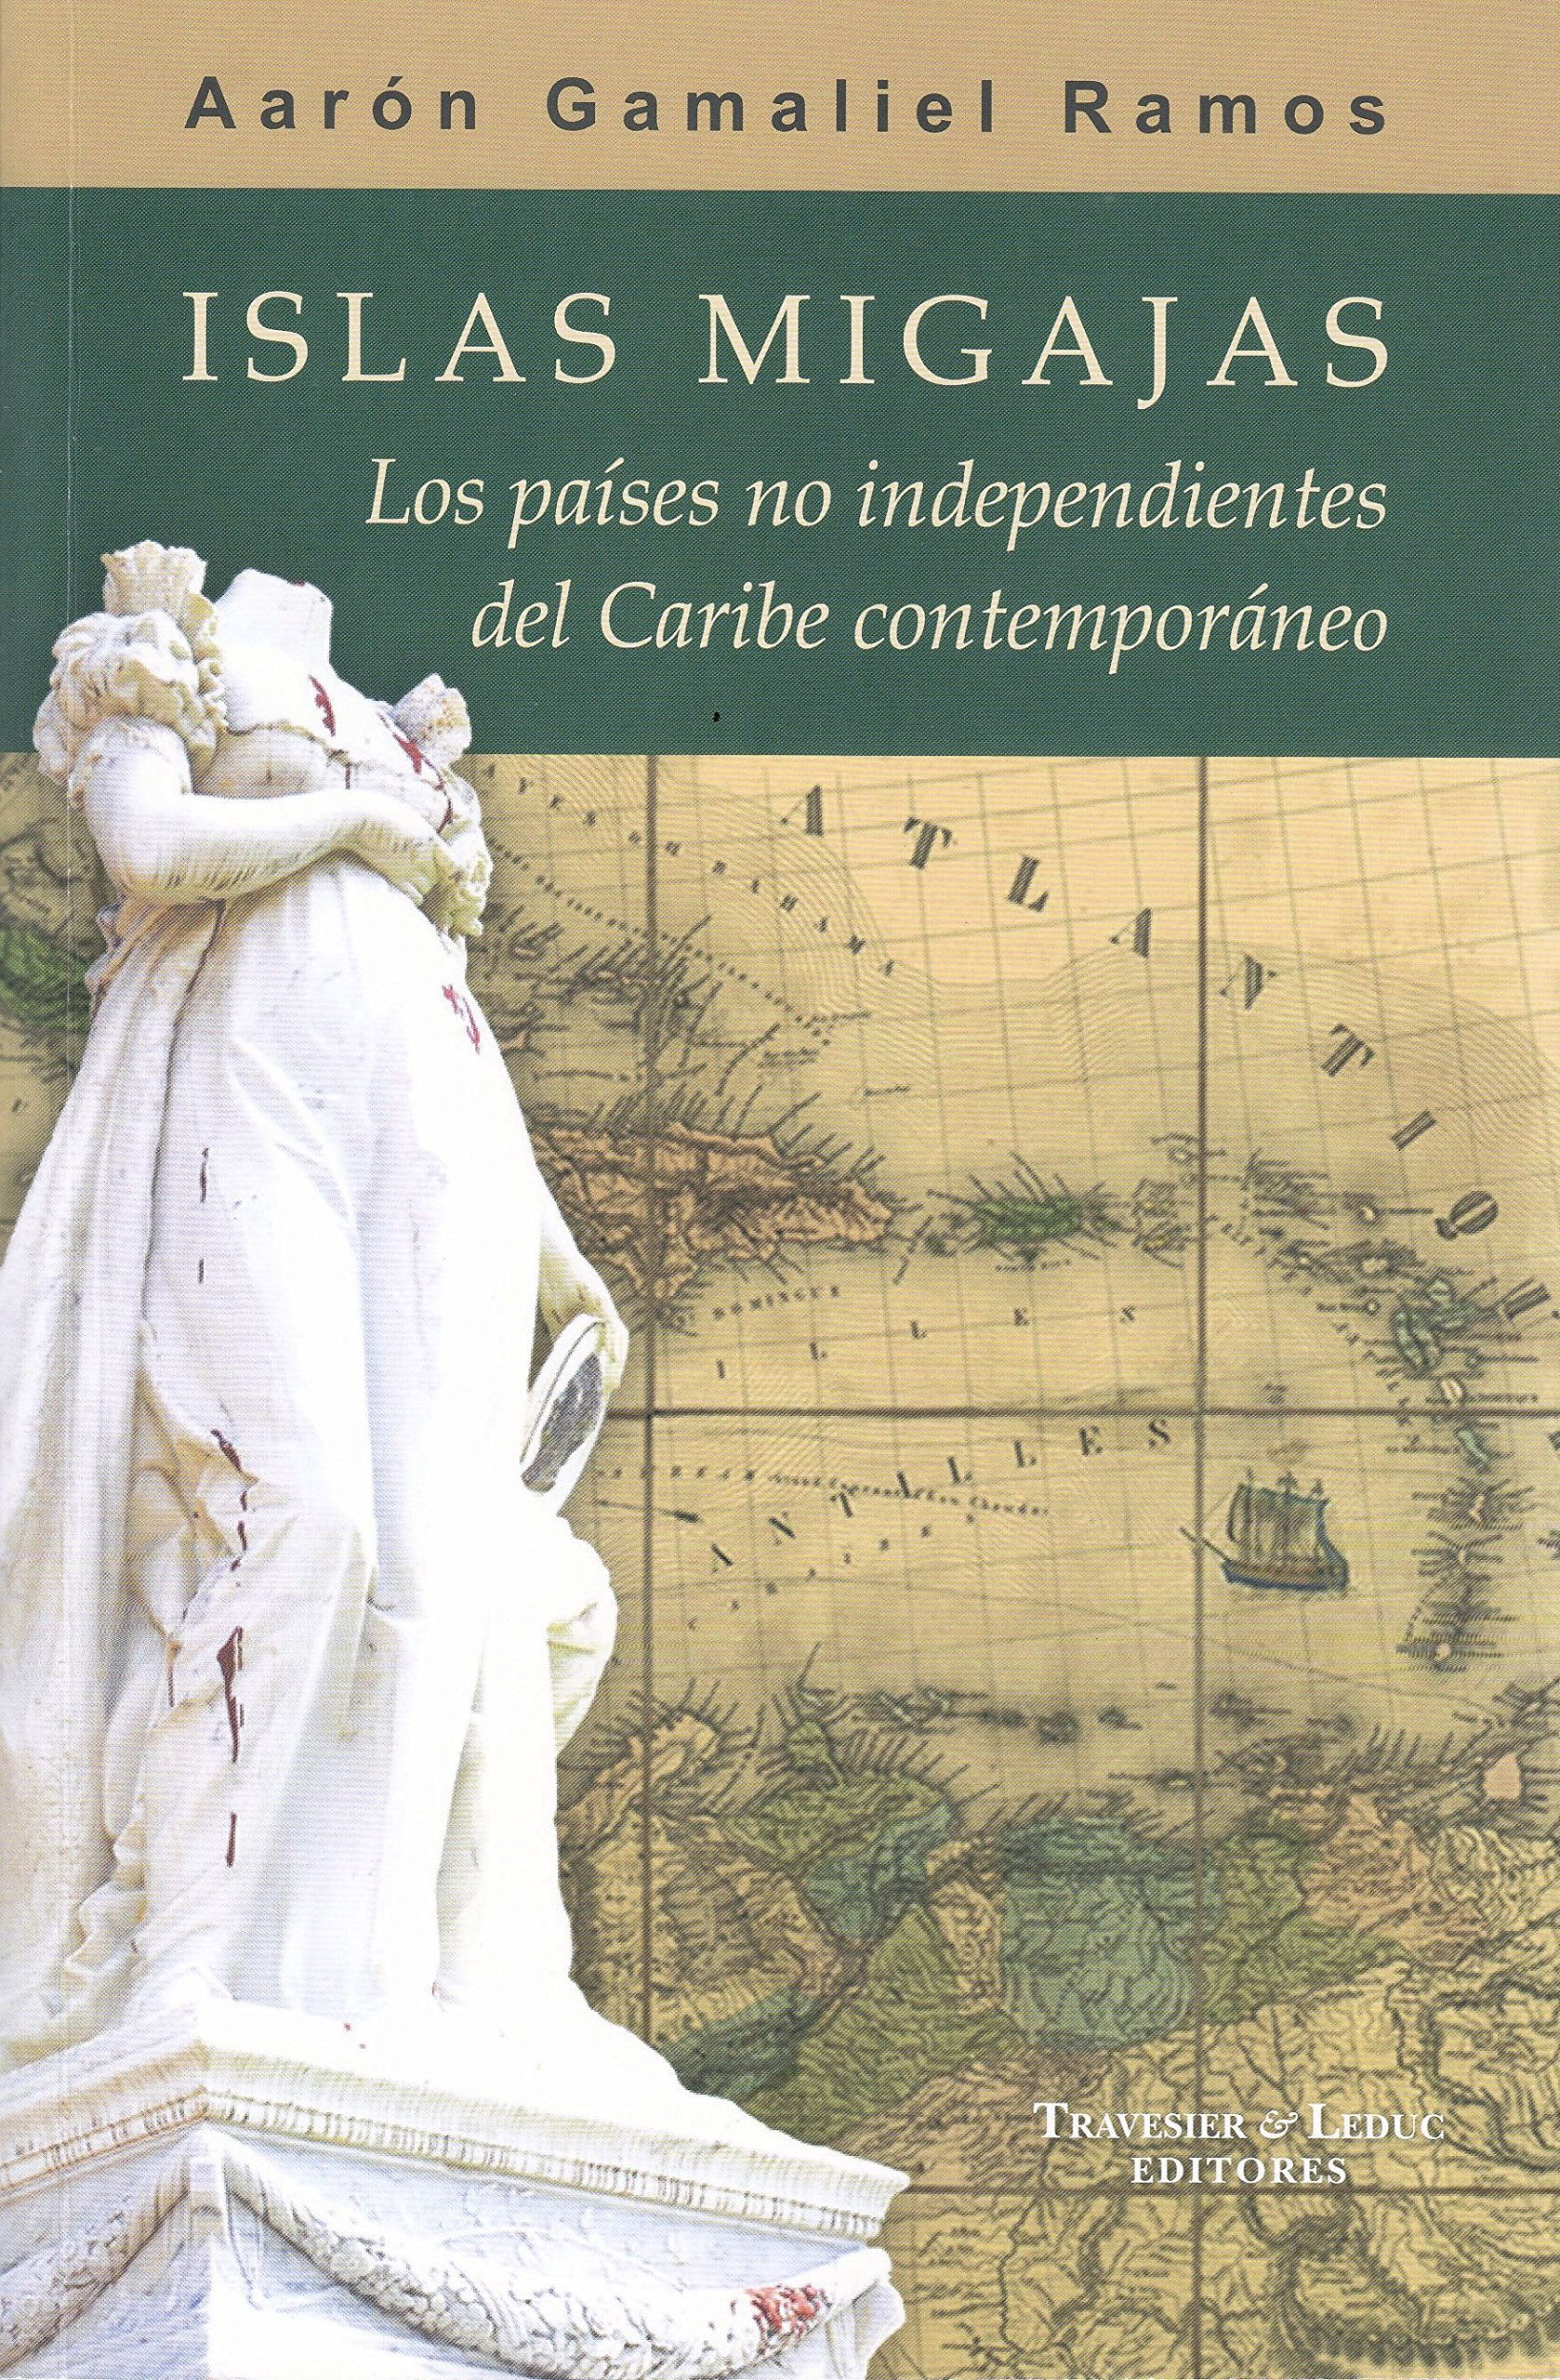 Islas Migajas: Los países no independientes del Caribe contemporáneo (Spanish Edition): Aarón Gamaliel Ramos: 9780997072501: Amazon.com: Books